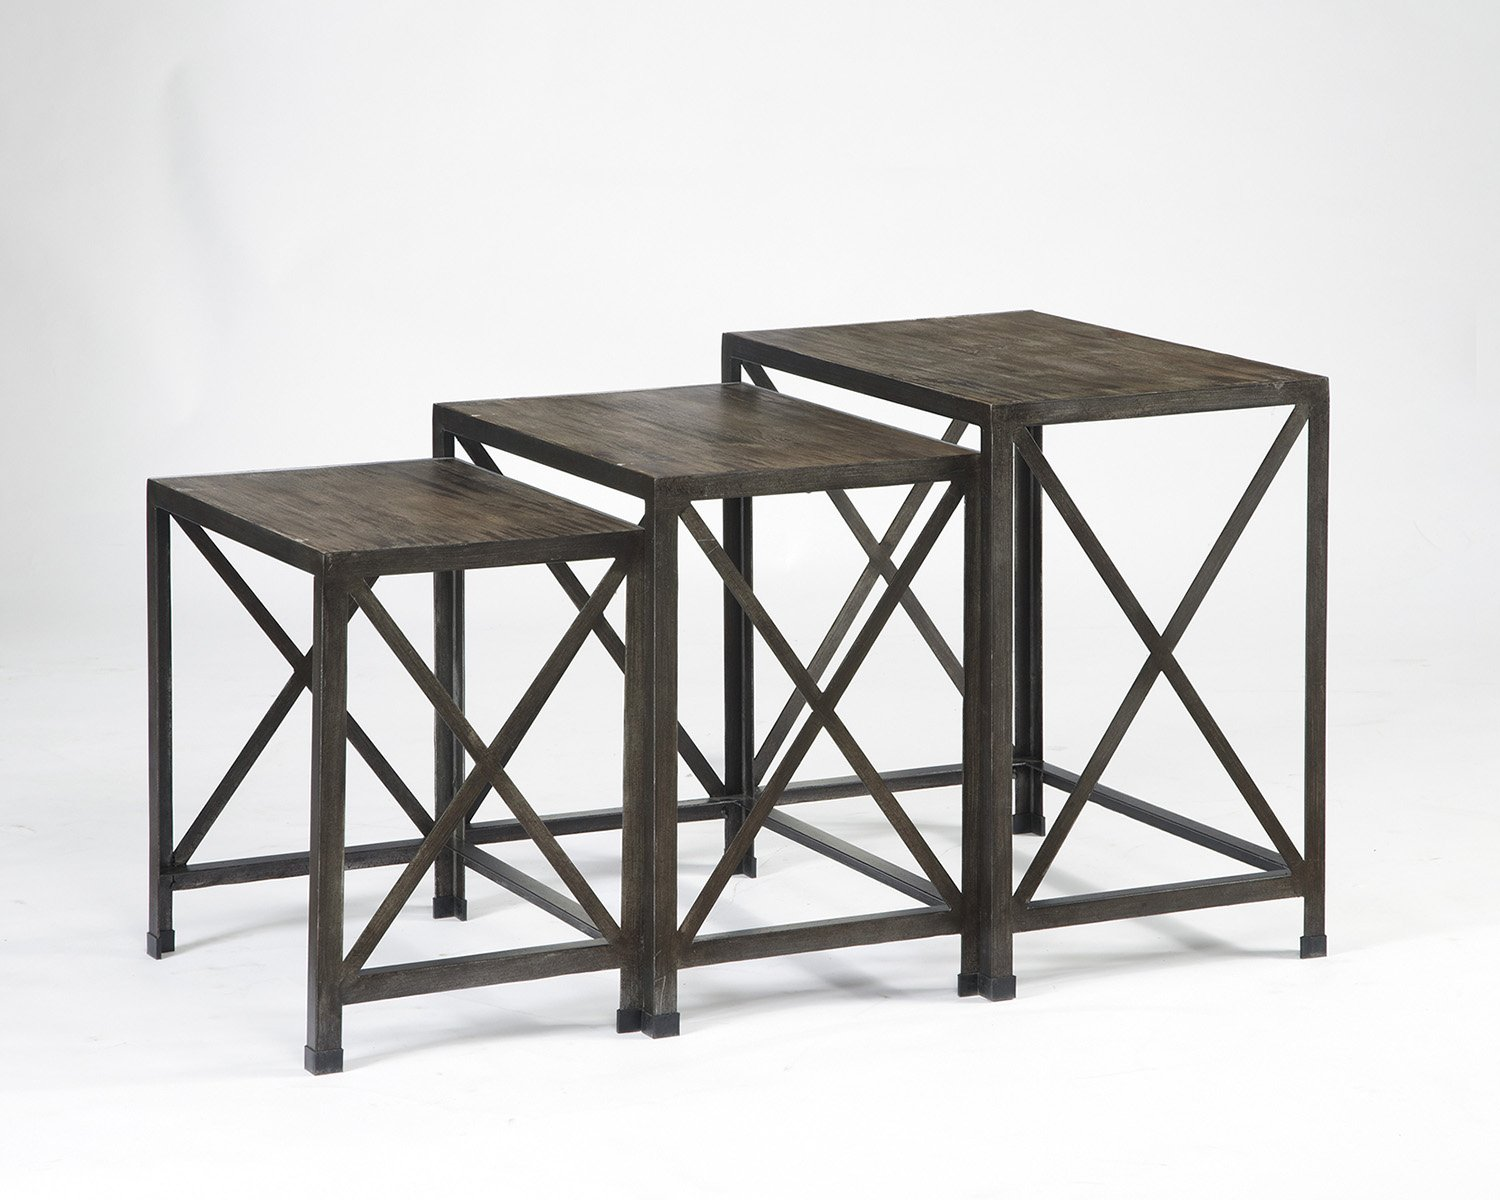 amazoncom ashley furniture signature design  vennilux nesting  - amazoncom ashley furniture signature design  vennilux nesting end tables  piece table set  gray brown finish kitchen  dining